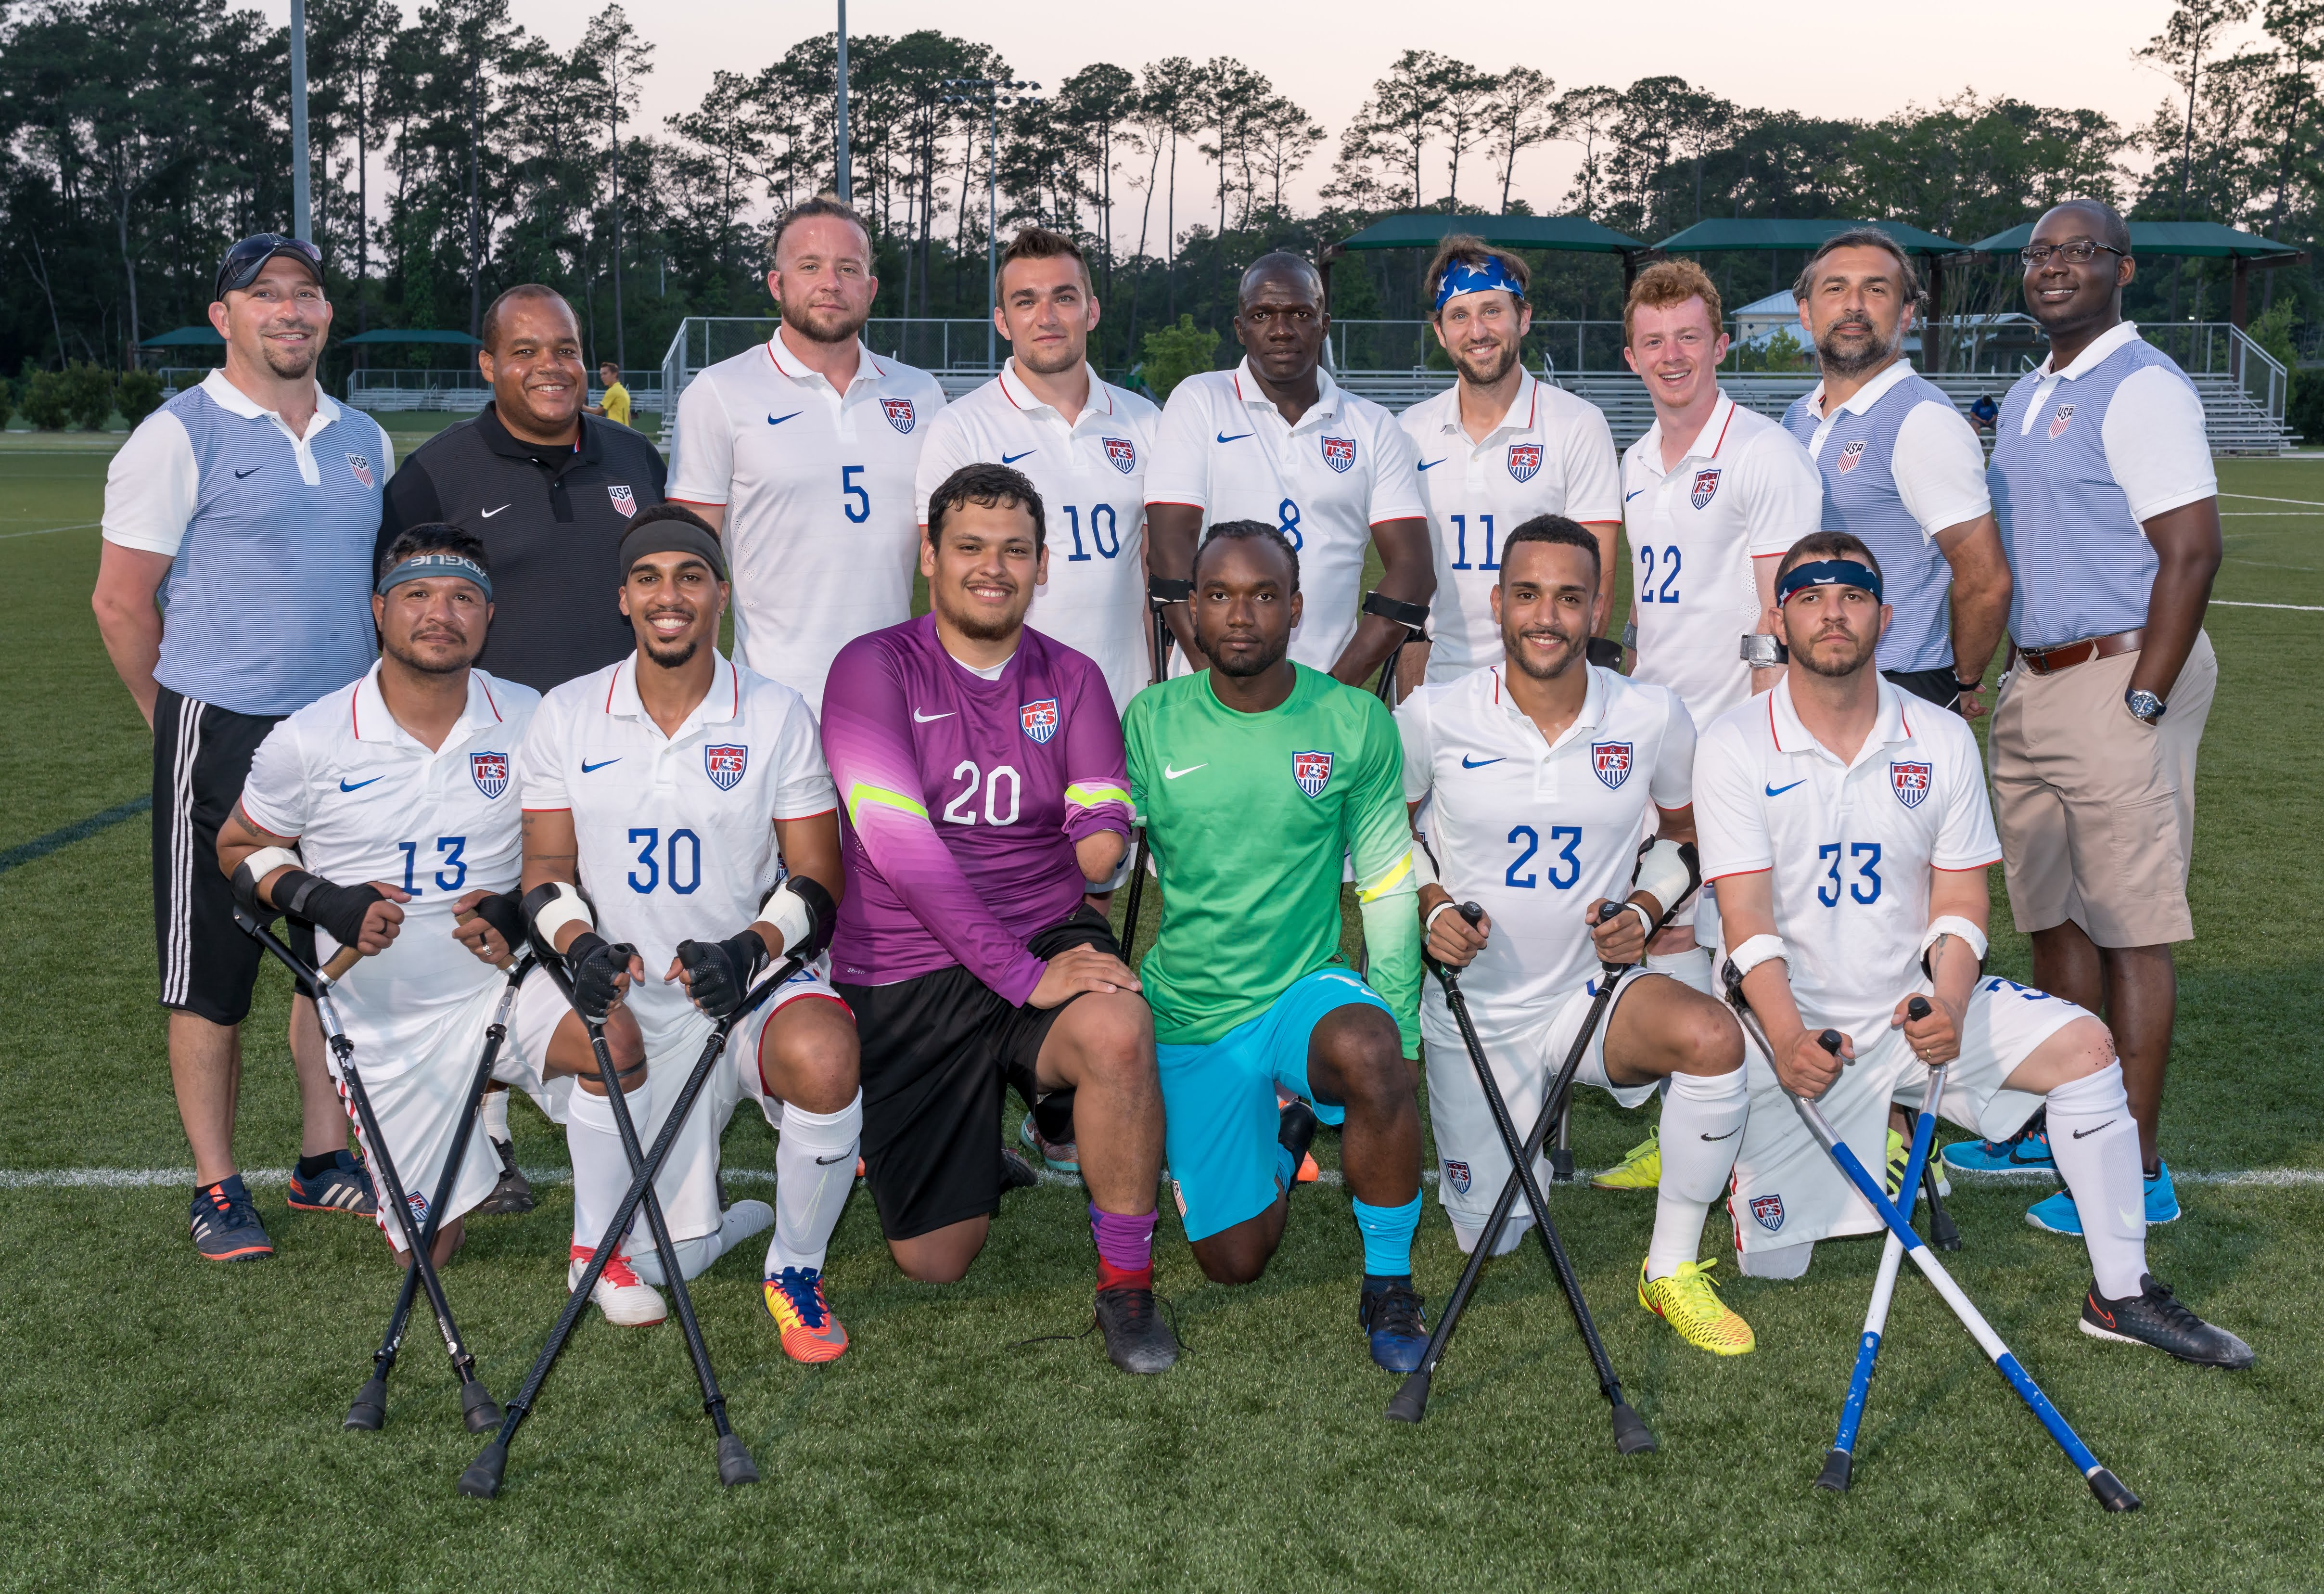 us Amputee soccer